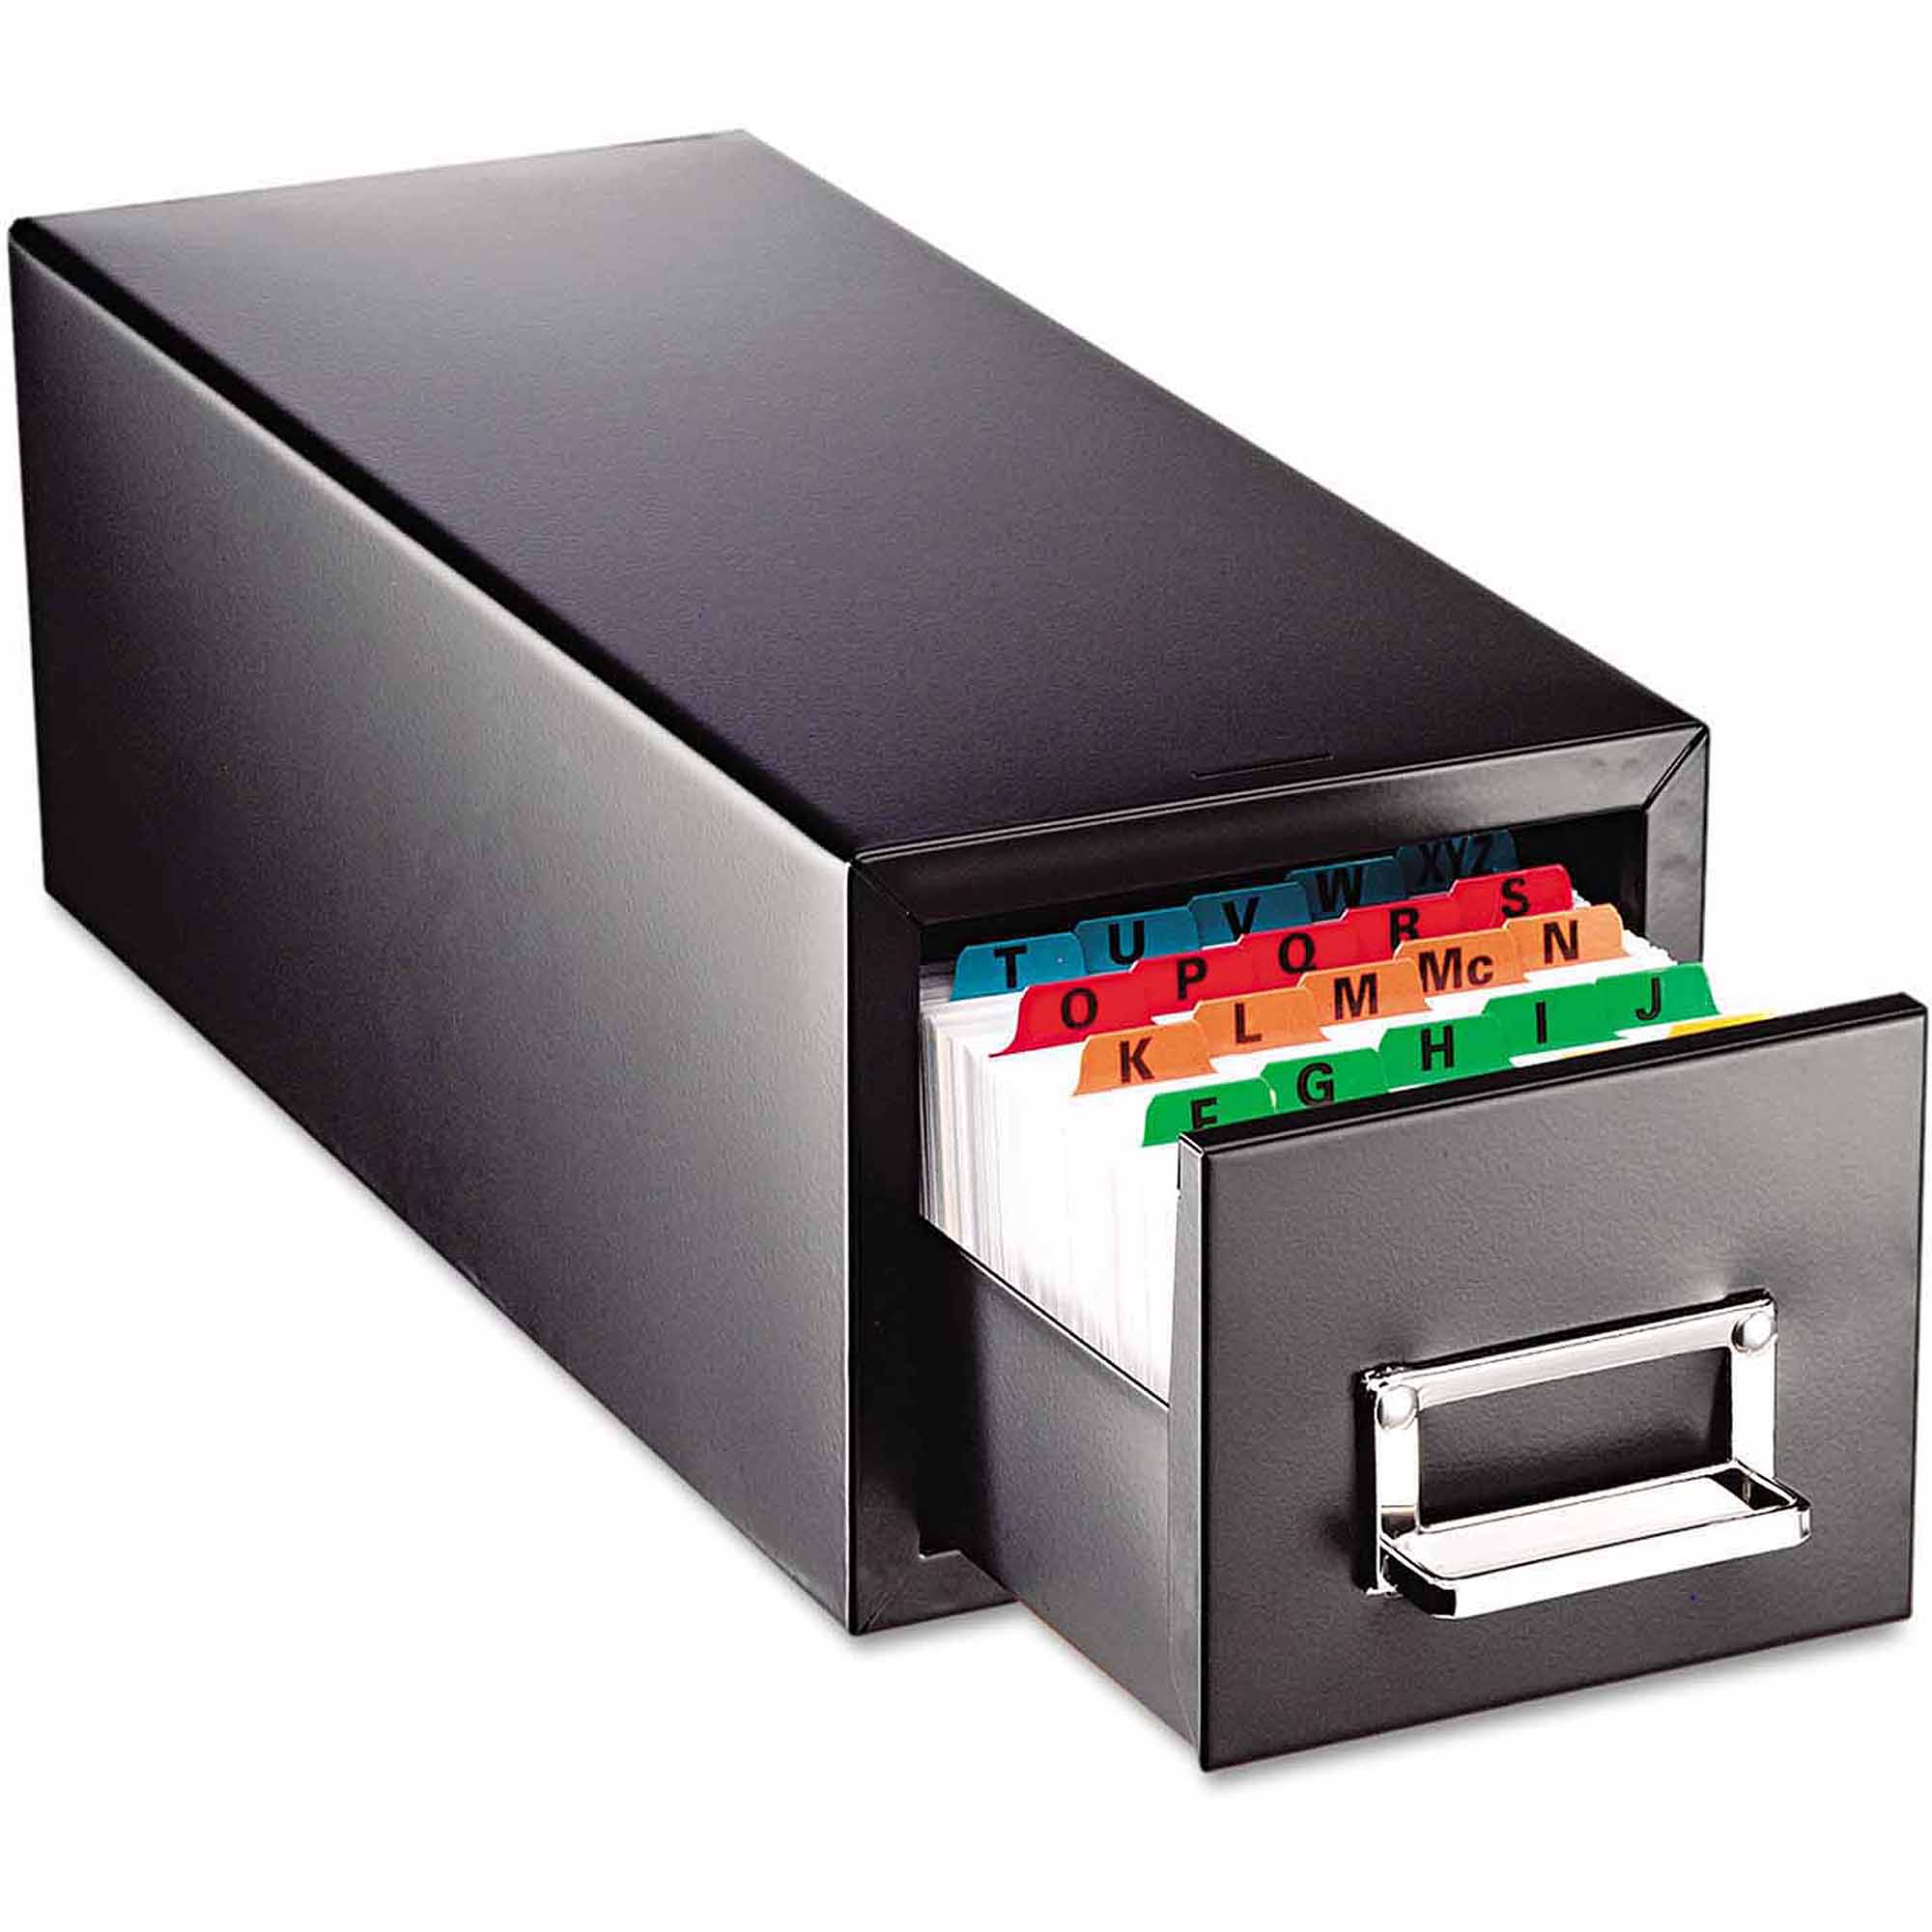 "SteelMaster Drawer Card Cabinet, Holds 1,500 4"" x 6"" cards"